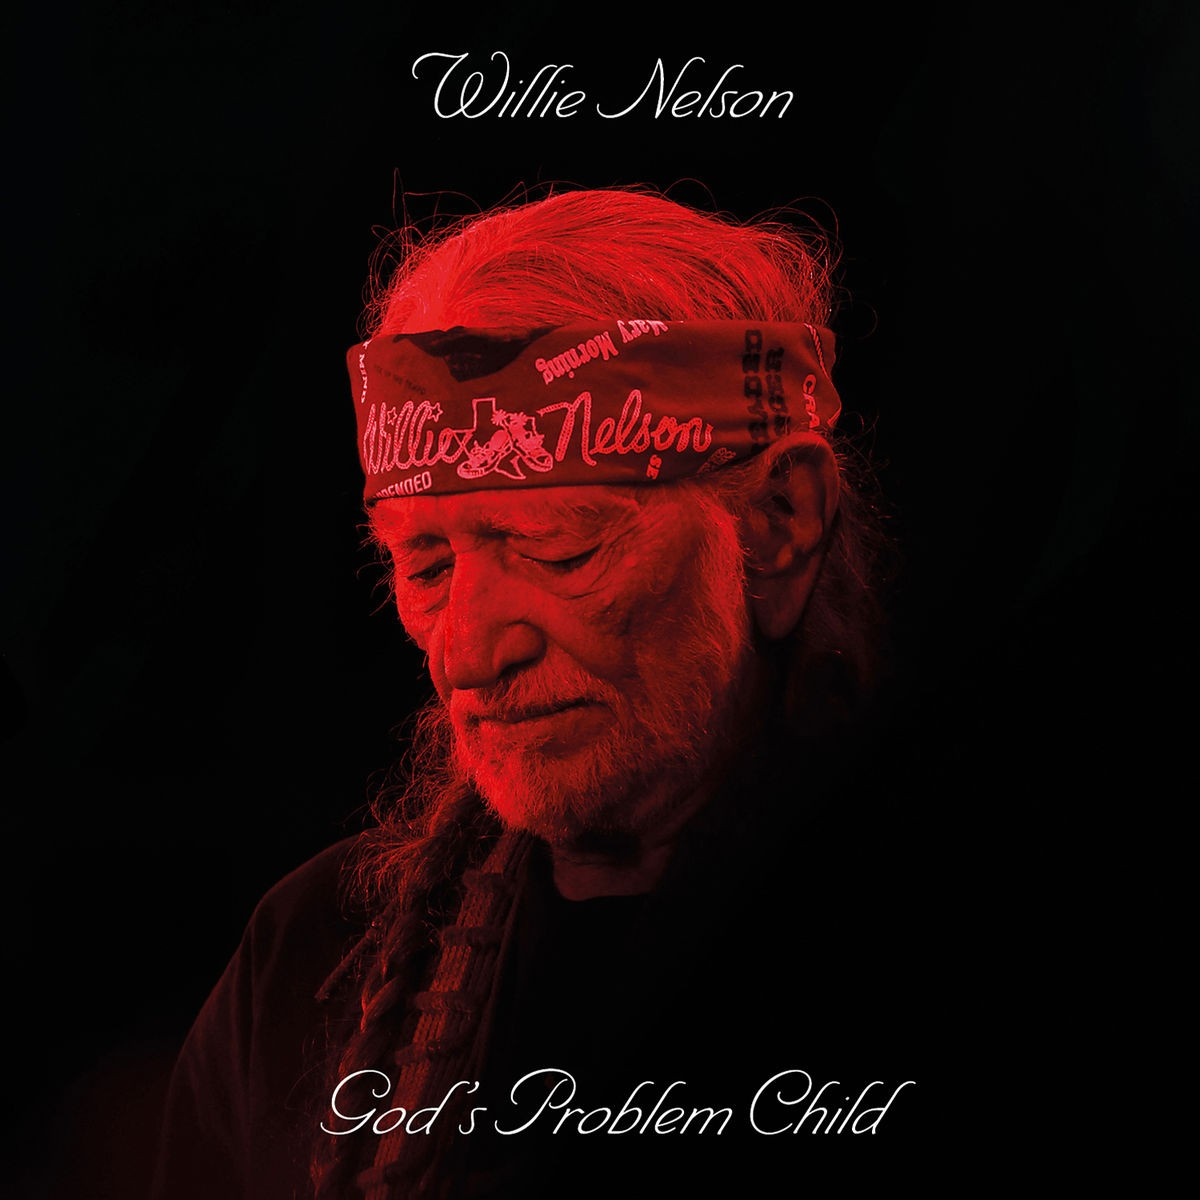 Willie Nelson - God's Problem Child VINYL - 88985415741